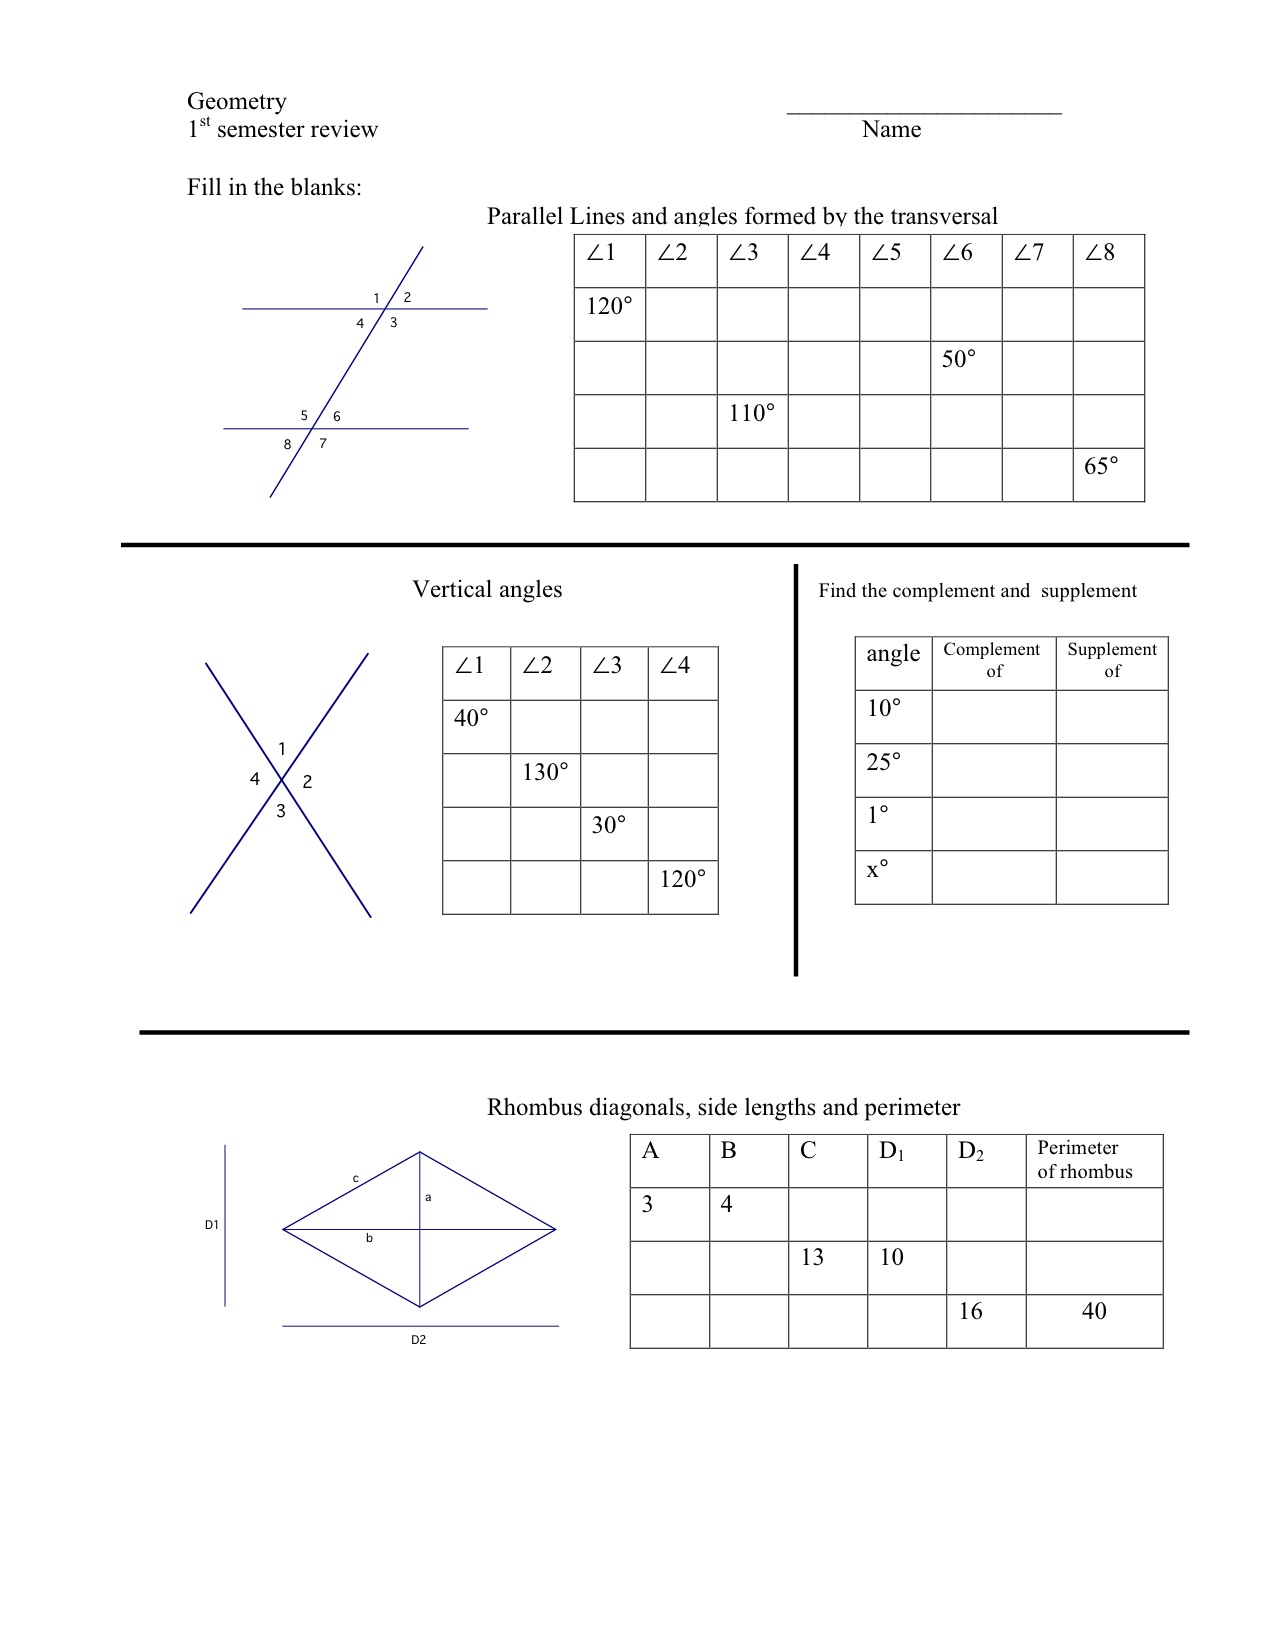 worksheet Geometry Review Worksheets geometry first semester review worksheet mrmillermath 1st sem chart2